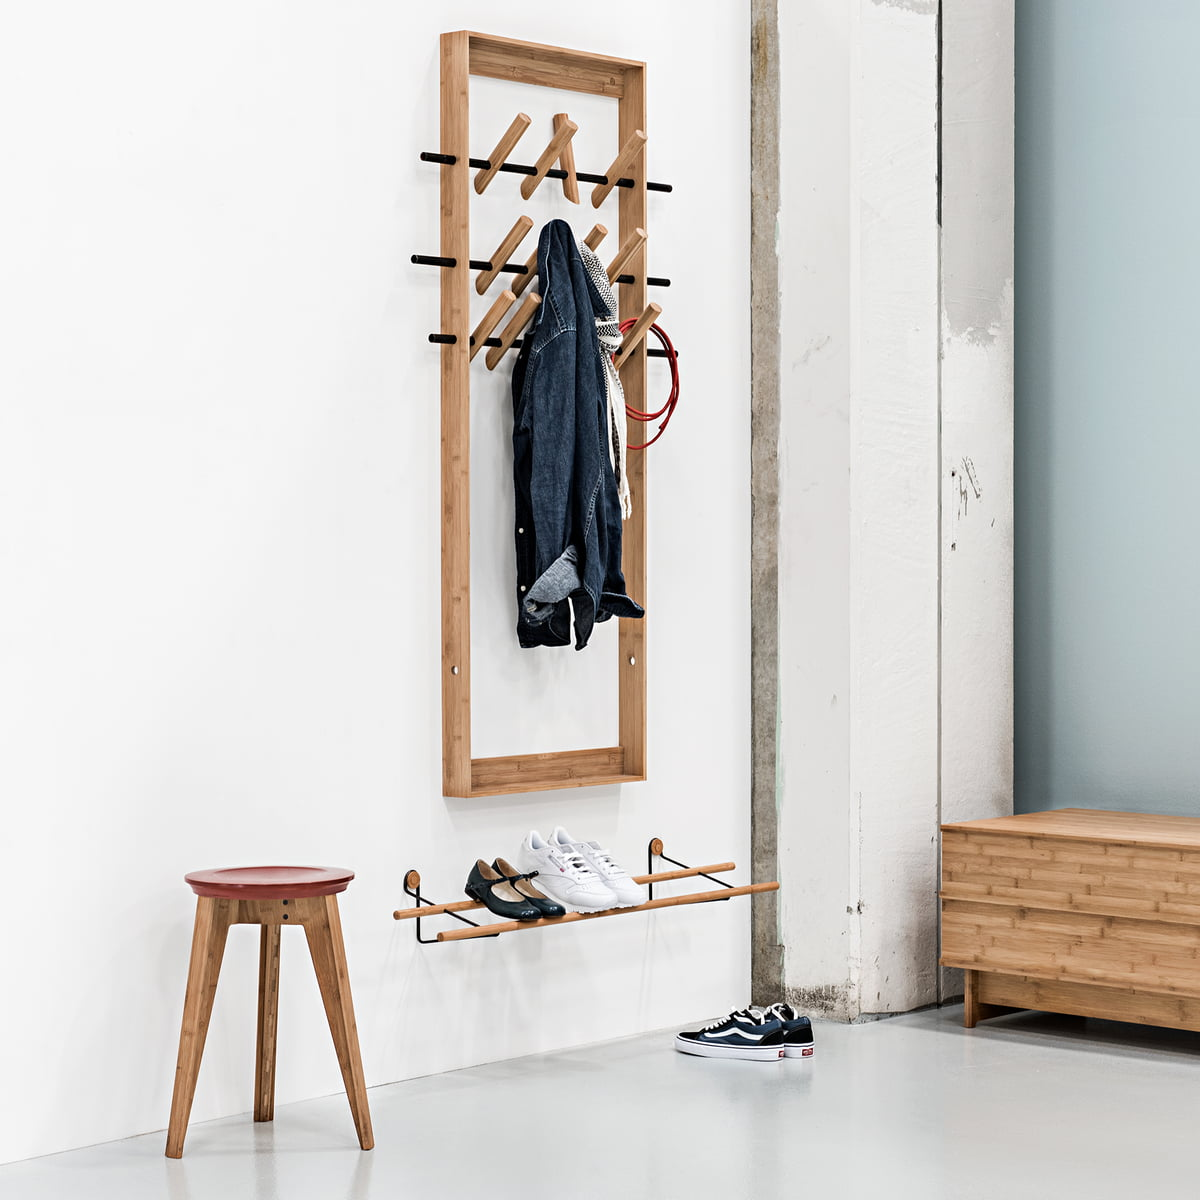 Buy The Shoe Rack By We Do Wood